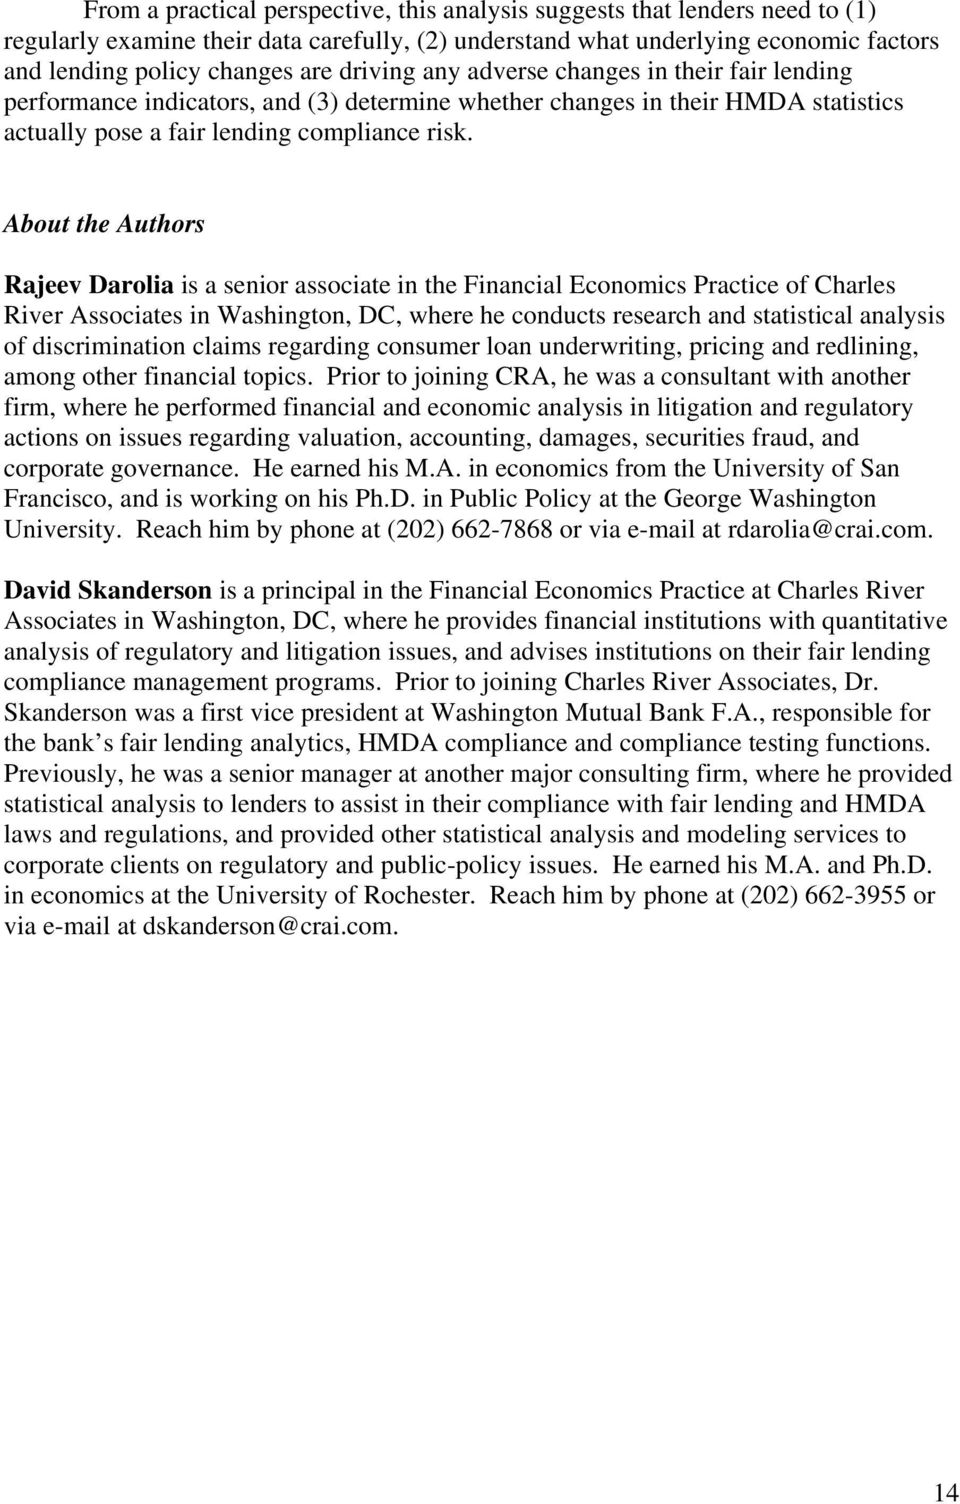 About the Authors Rajeev Darolia is a senior associate in the Financial Economics Practice of Charles River Associates in Washington, DC, where he conducts research and statistical analysis of